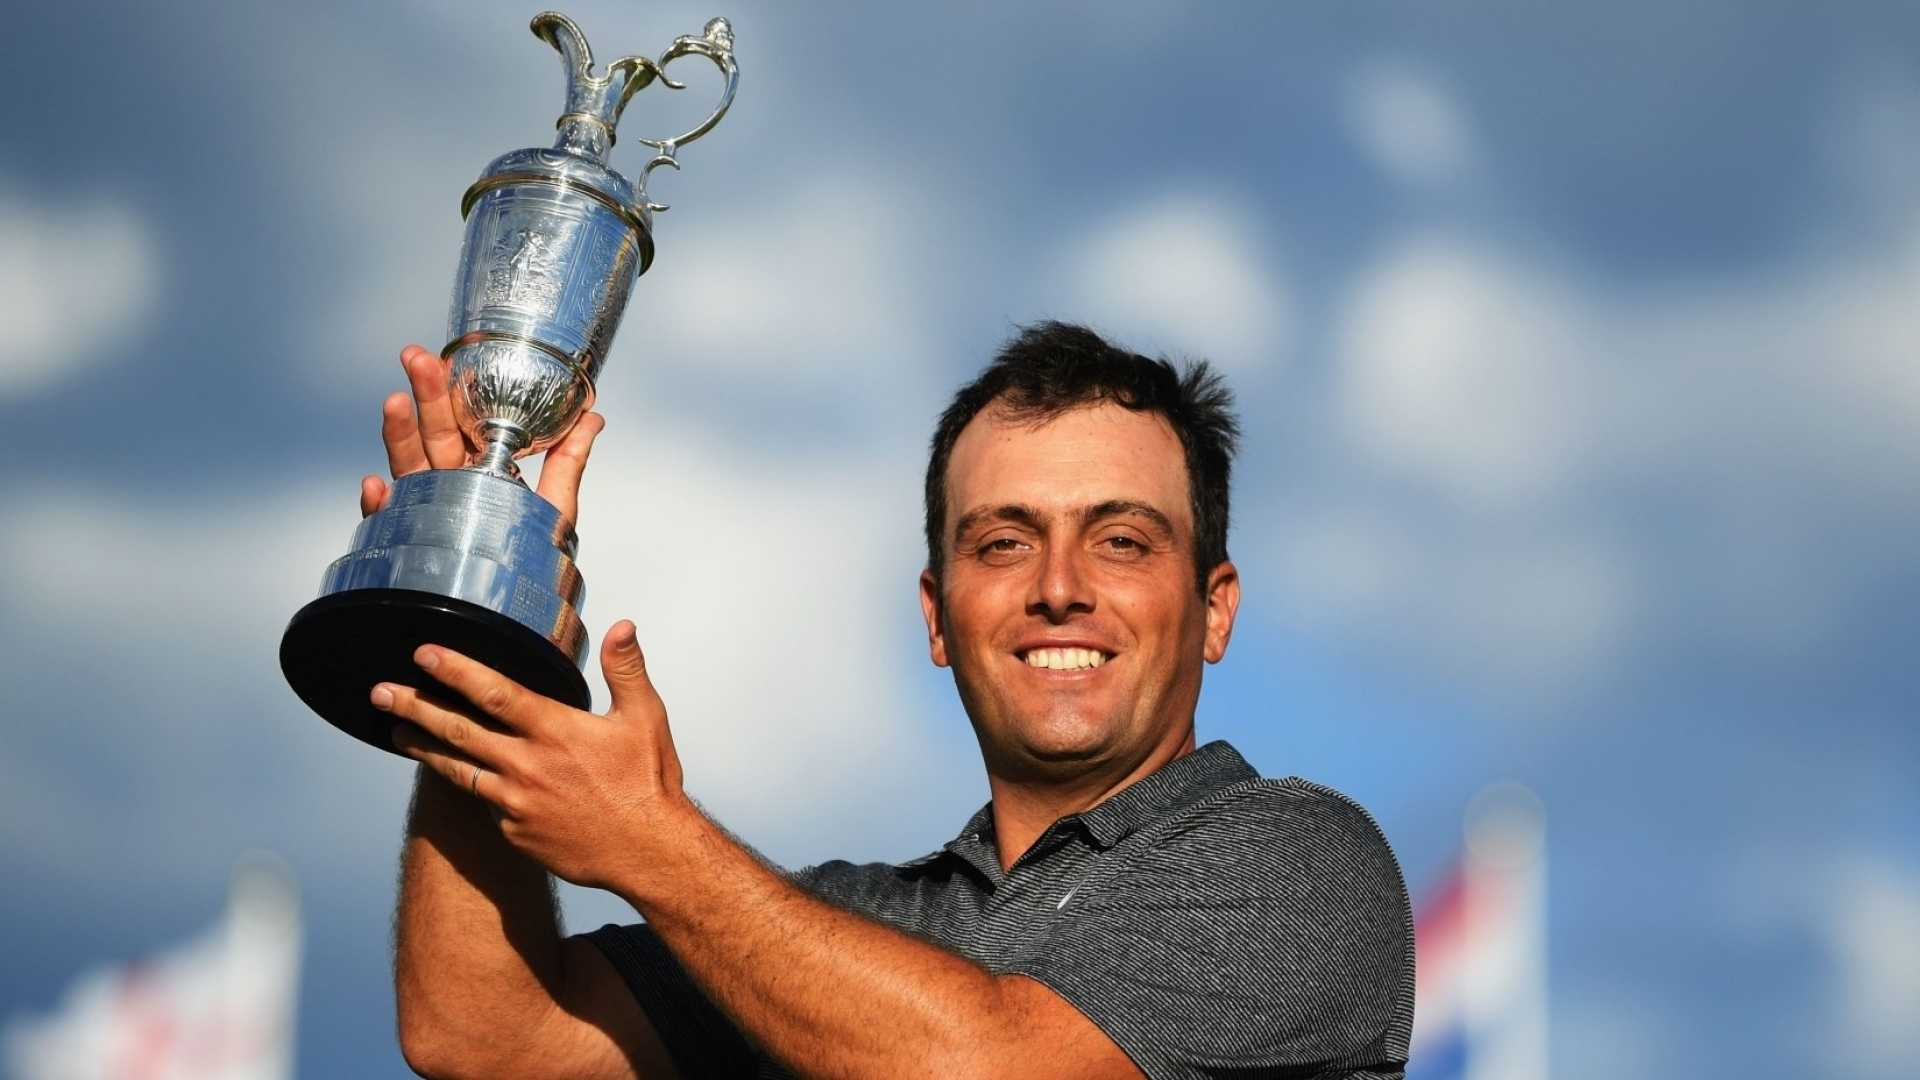 The British Open Champion's 'Performance Coach' Just Revealed the Key to Thriving Under Pressure